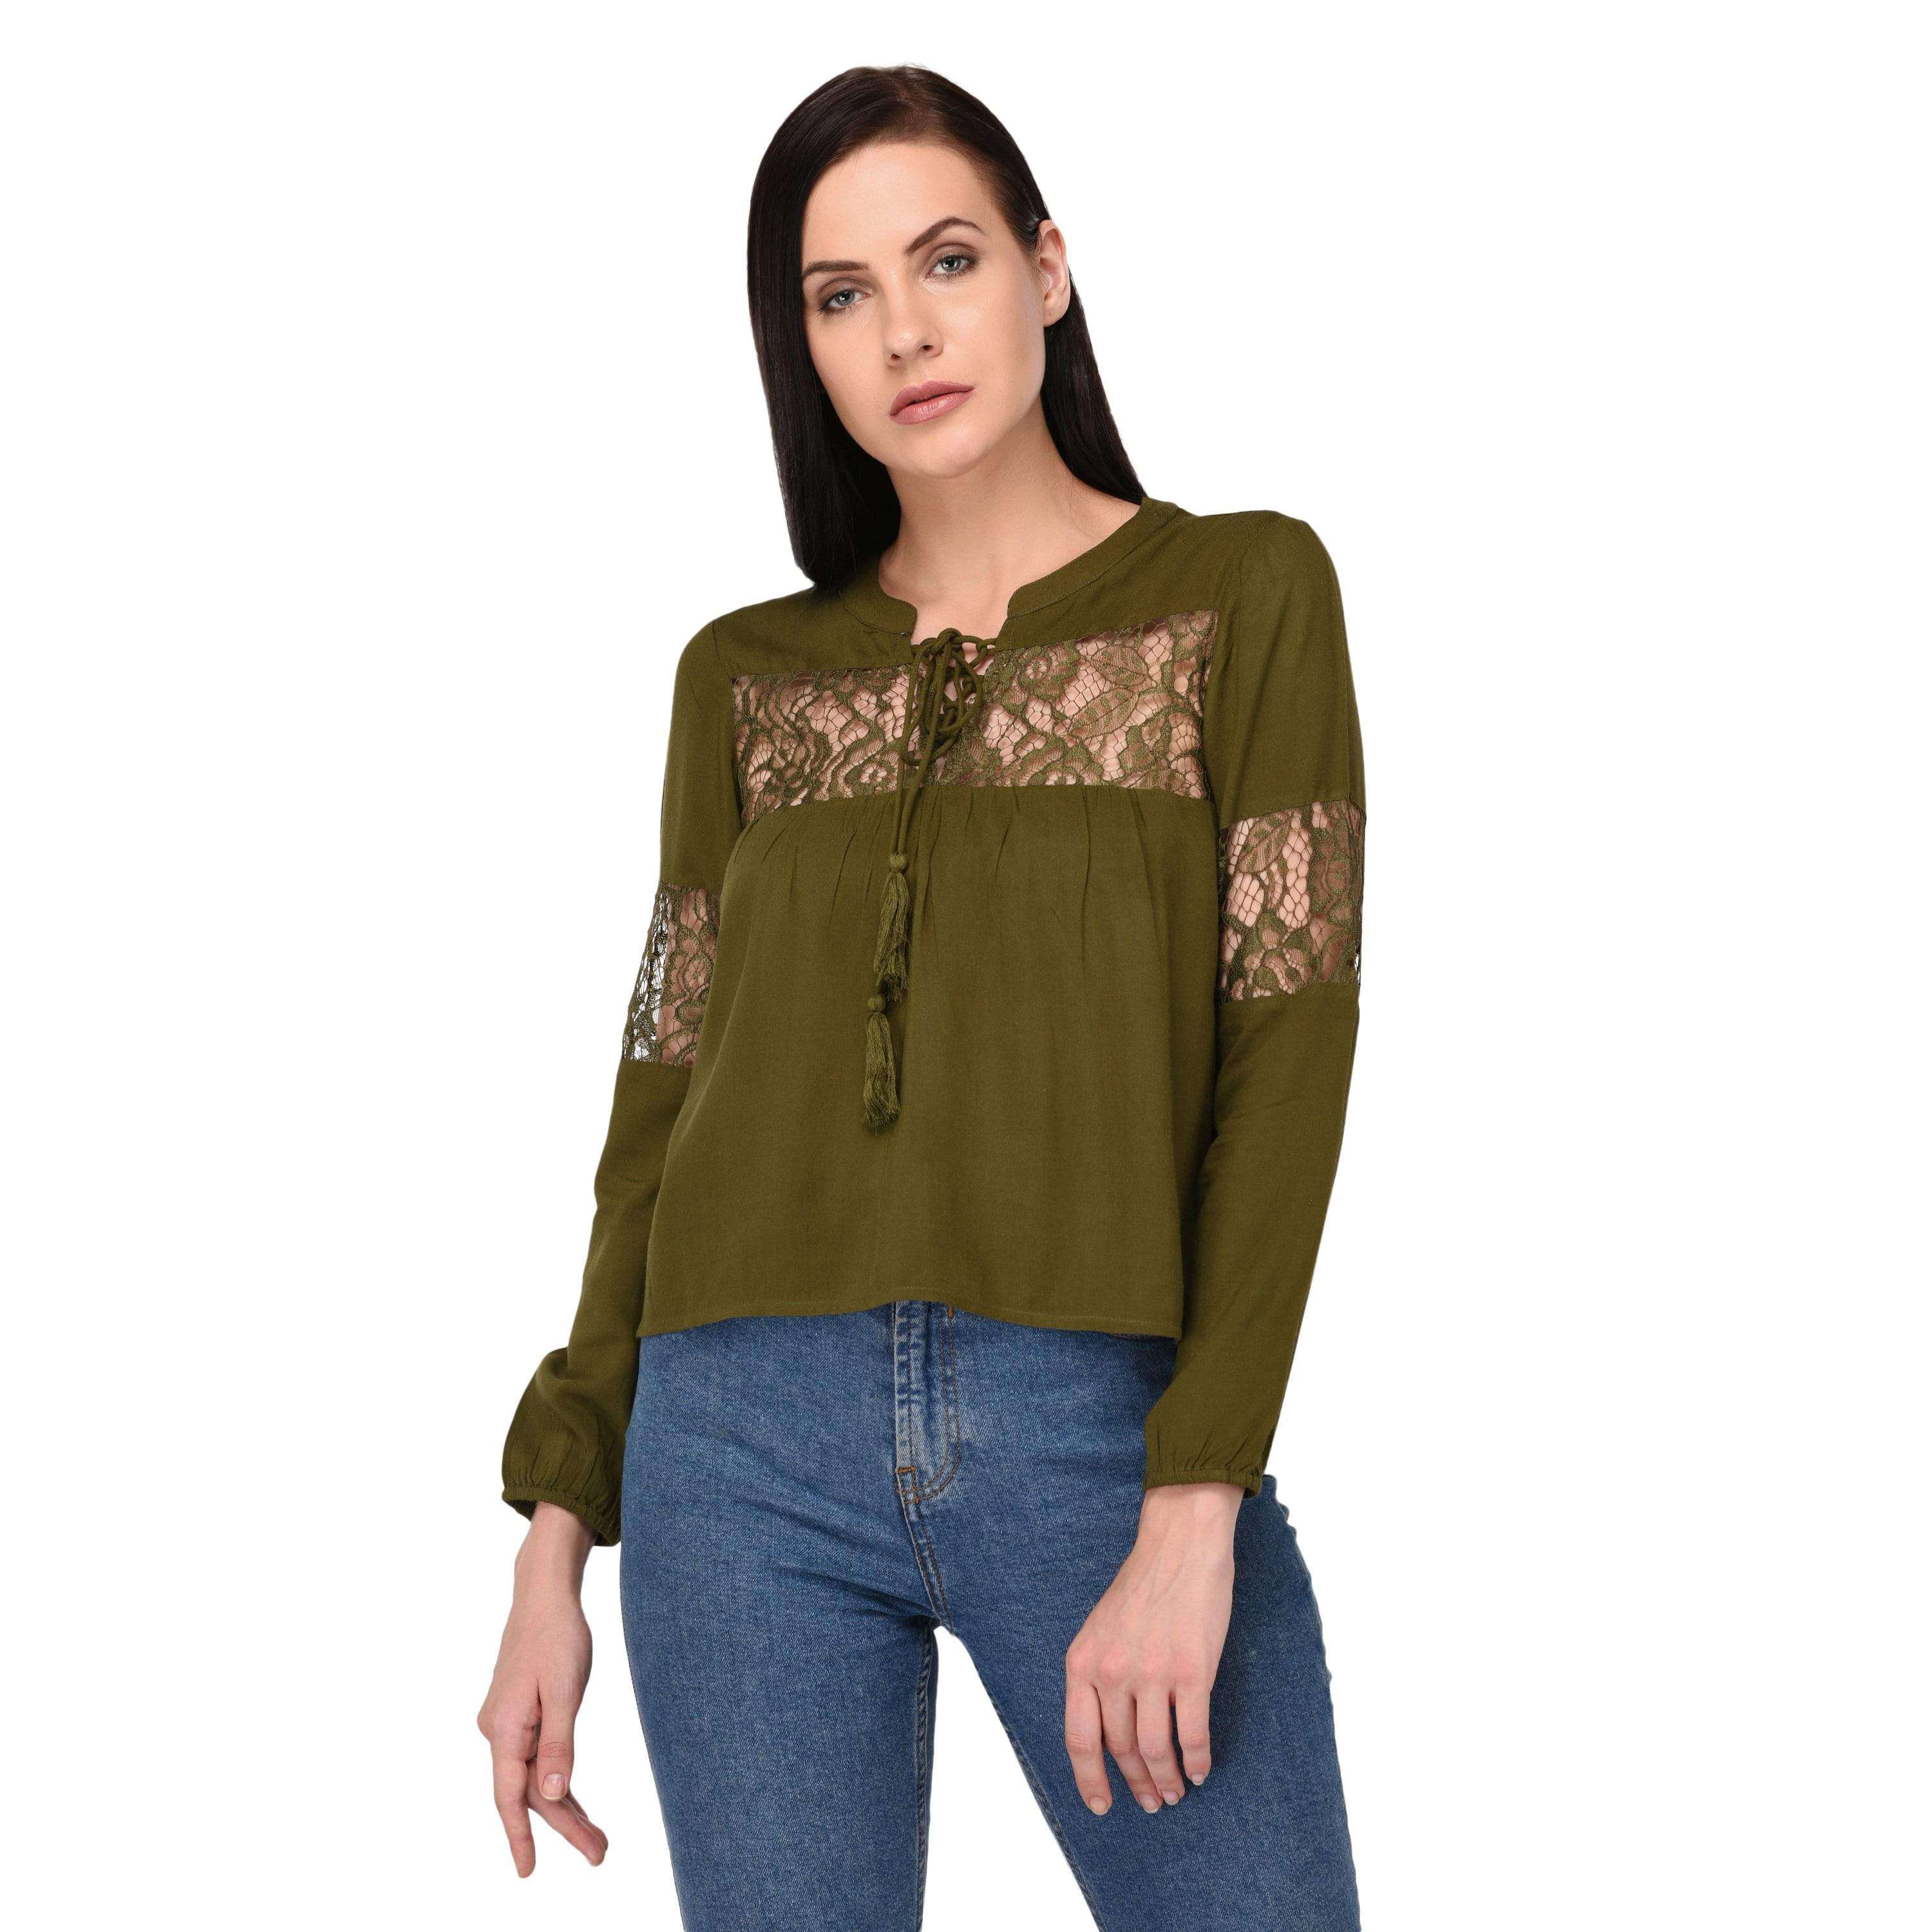 Tie up Neck Top Olive - NIXX Clothing